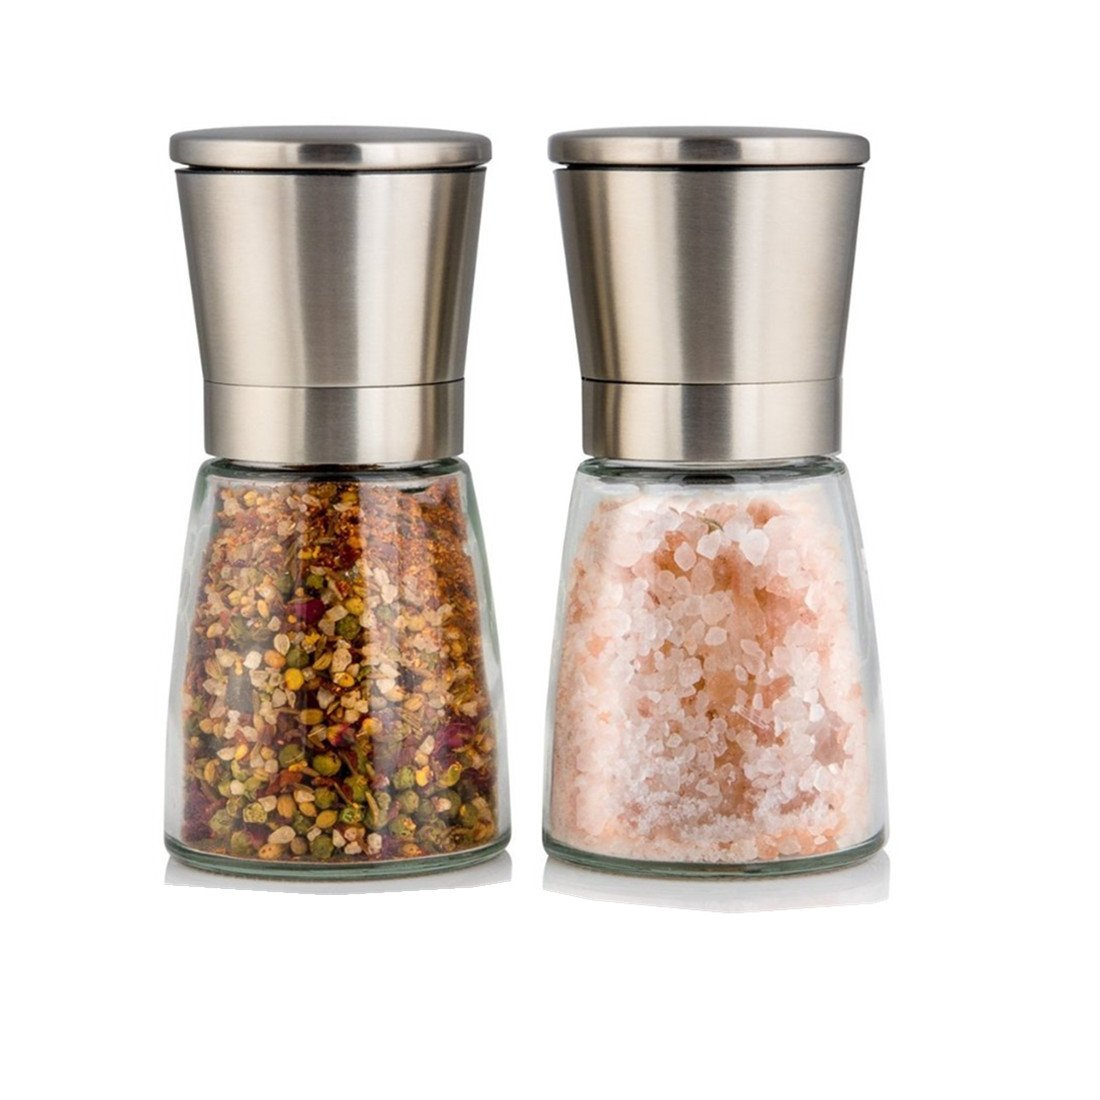 YouLike Stainless Steel Pepper Mill and Salt Mill Ceramic Grinder Set of 2 with Adjustable Coarseness Ceramic Suitable for Peppercorns, Sea Salt, Spices, Cumin and Other Seasoning YL